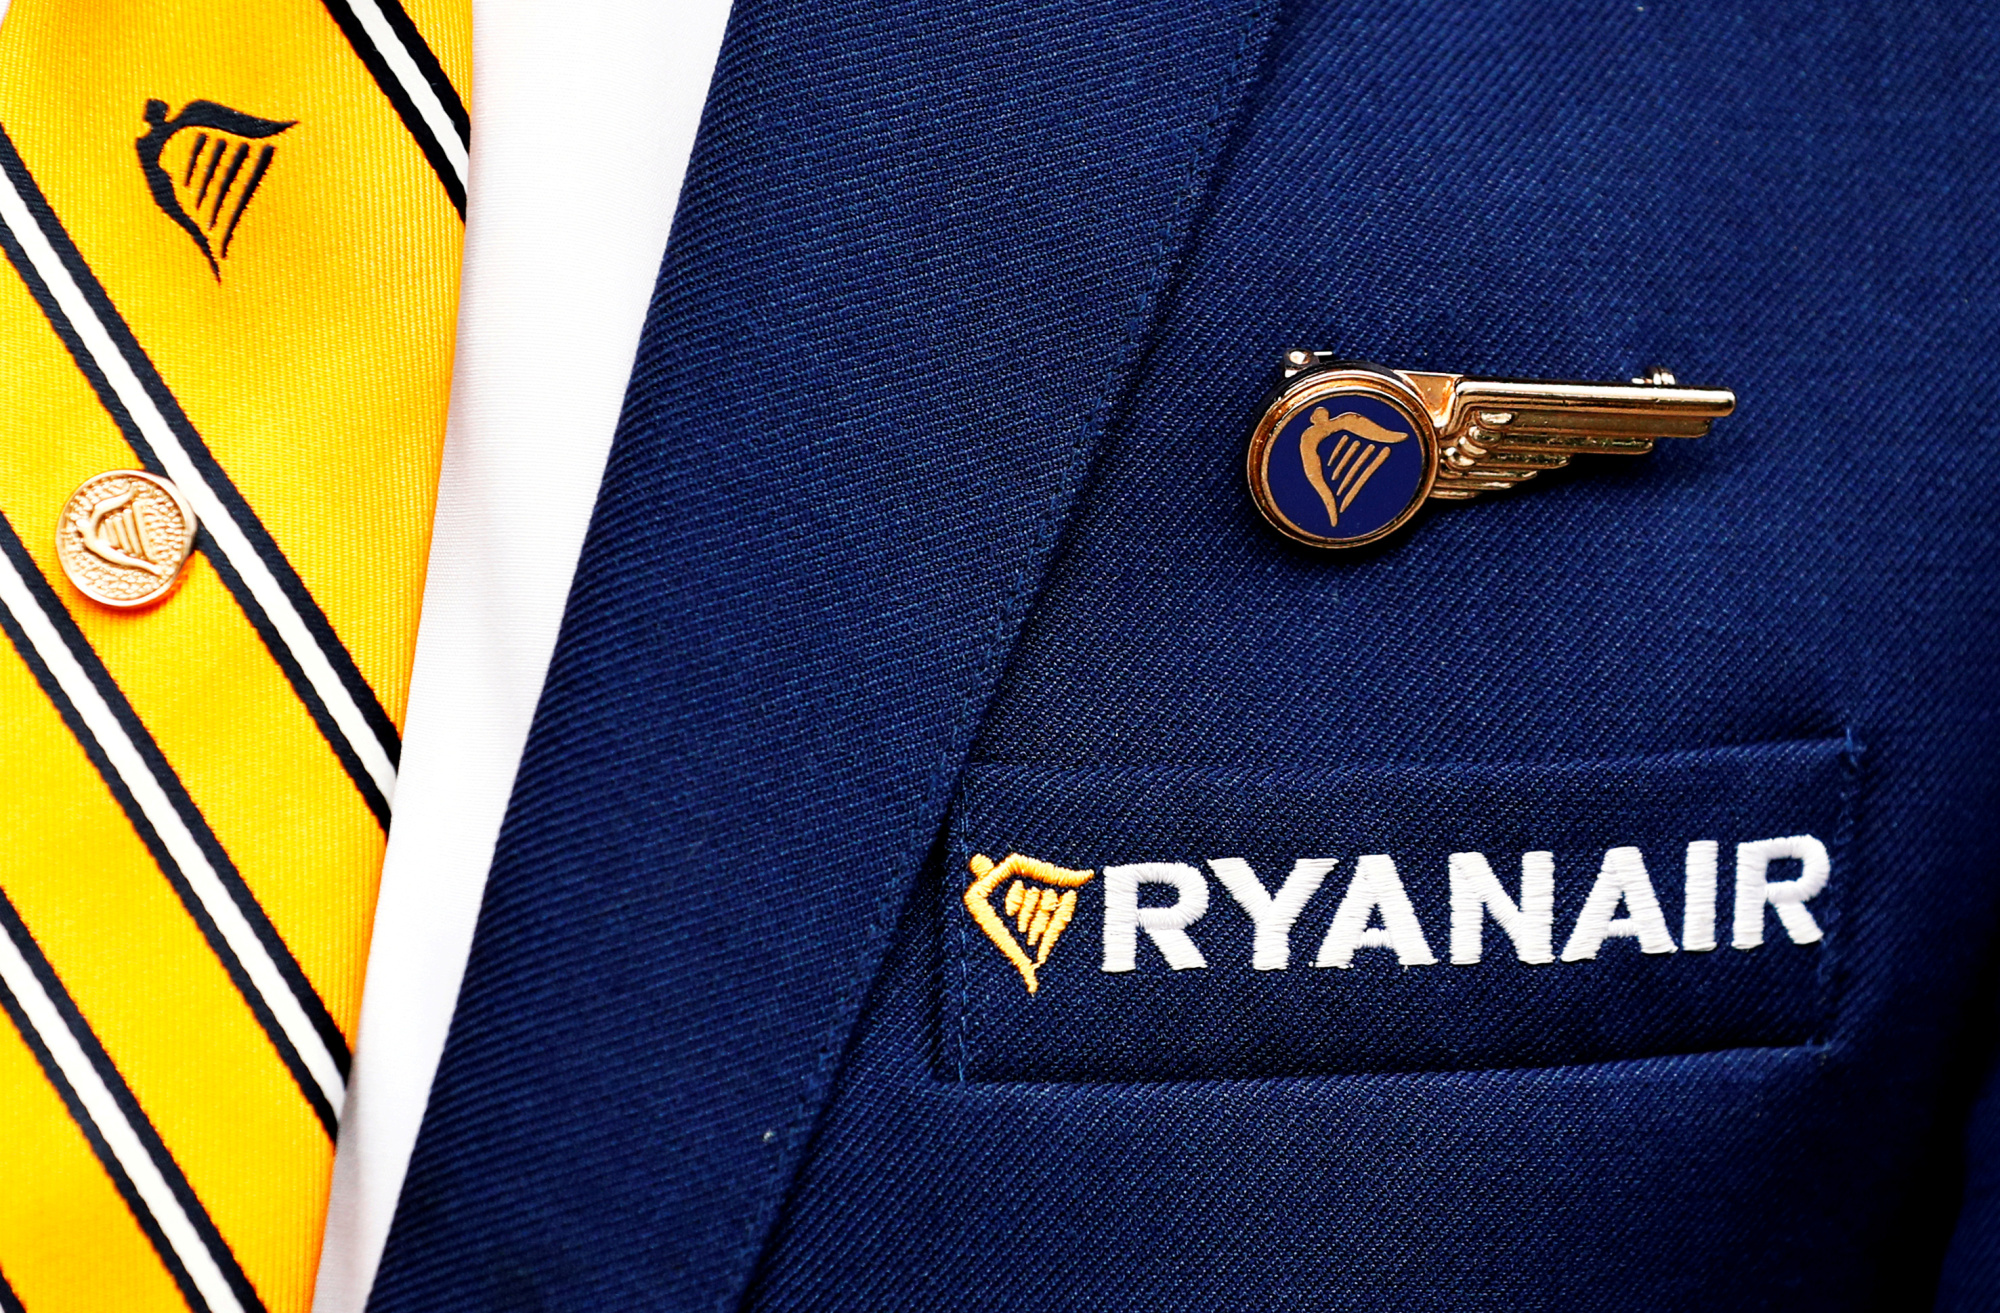 The Ryanair logo is pictured on the the jacket of a cabin crew member ahead of a news conference by Ryanair union representatives in Brussels last September. | REUTERS